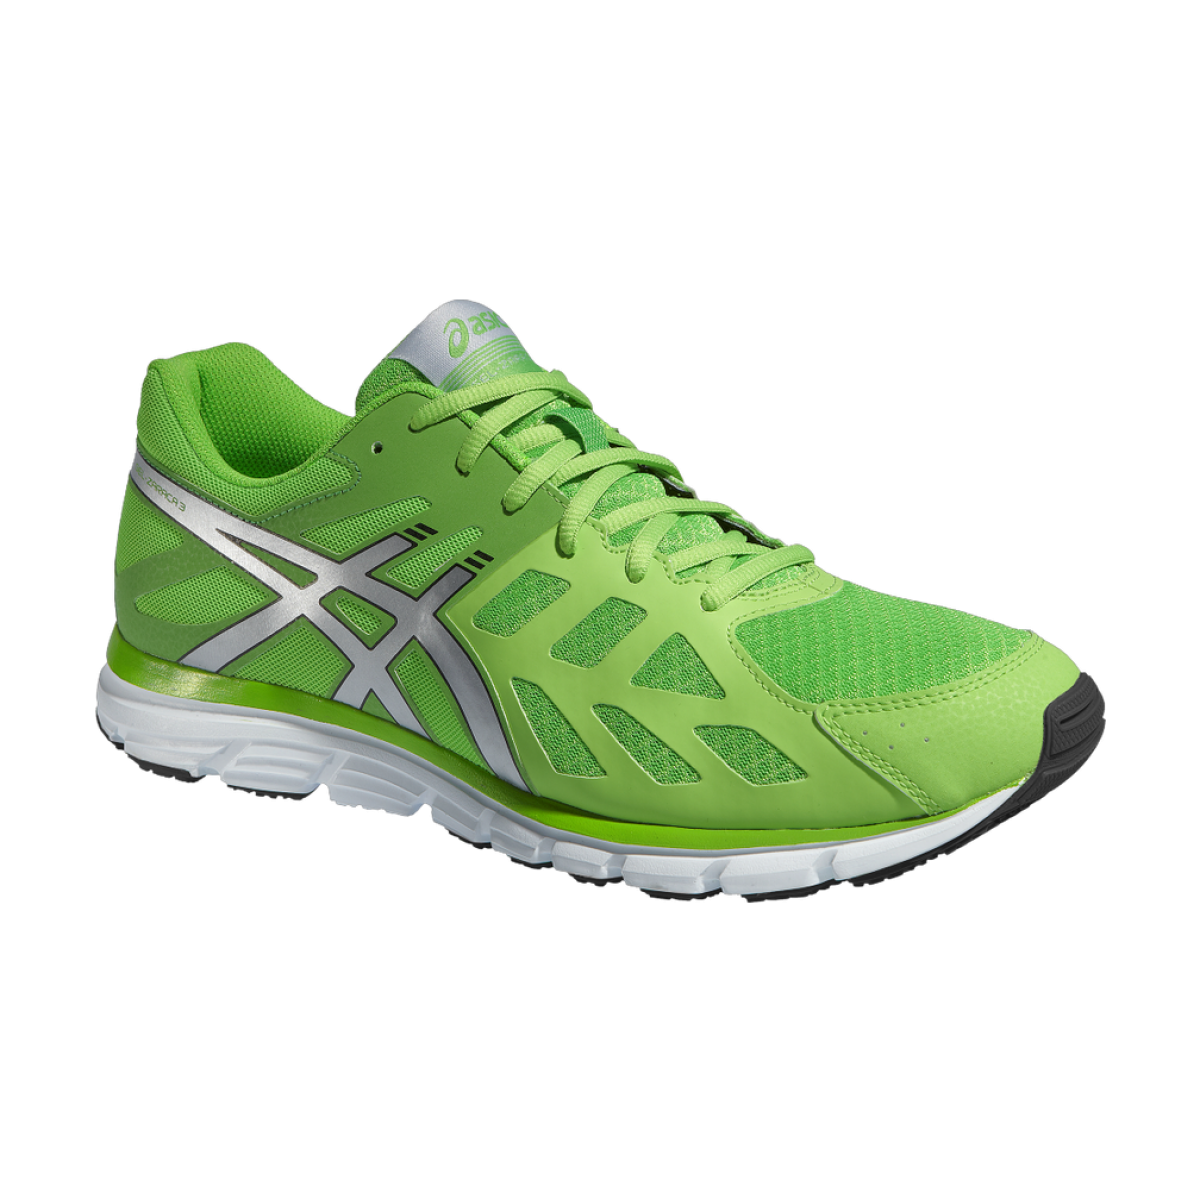 Green Asics Running Shoes Png Image image #45052